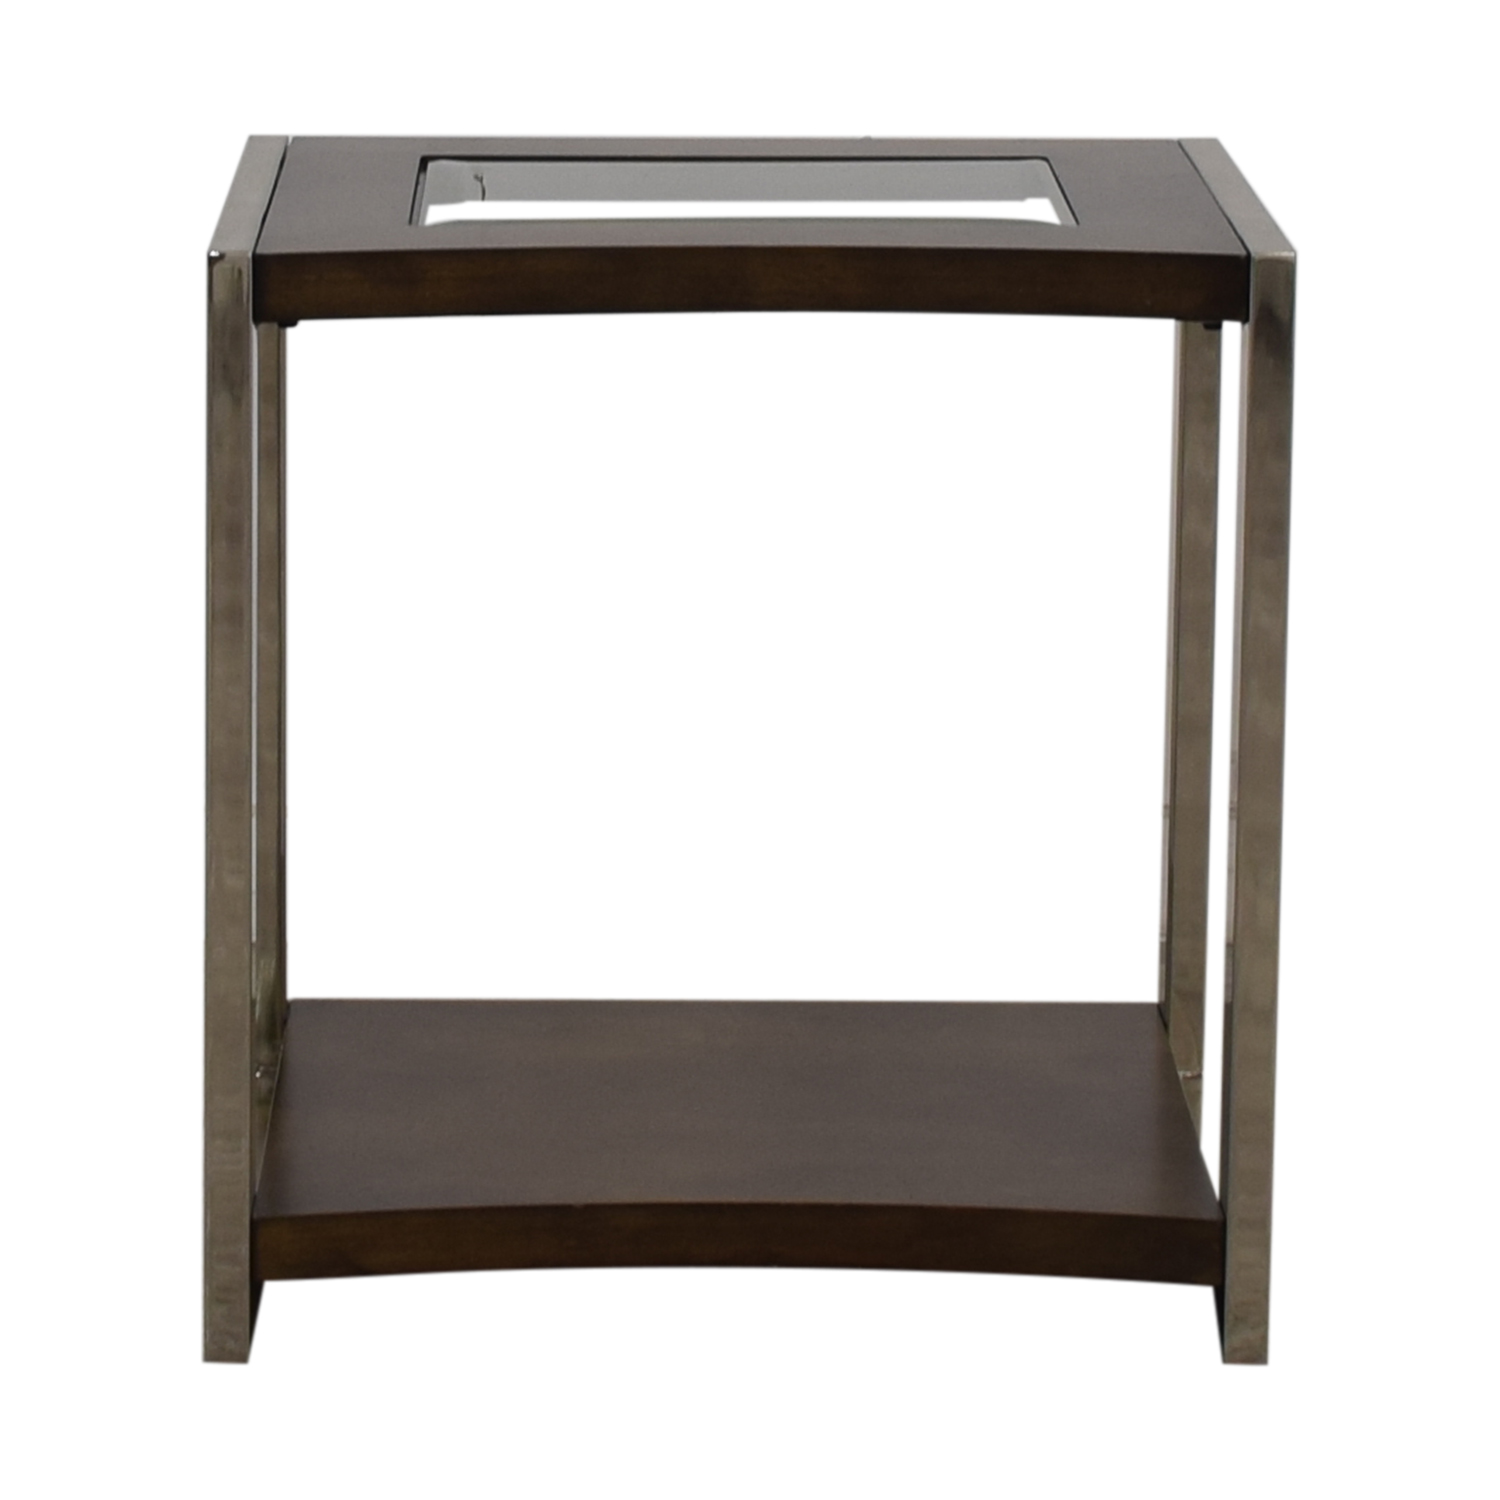 buy Raymour & Flanigan Raymour & Flanigan Glass Wood and Chrome End Table online